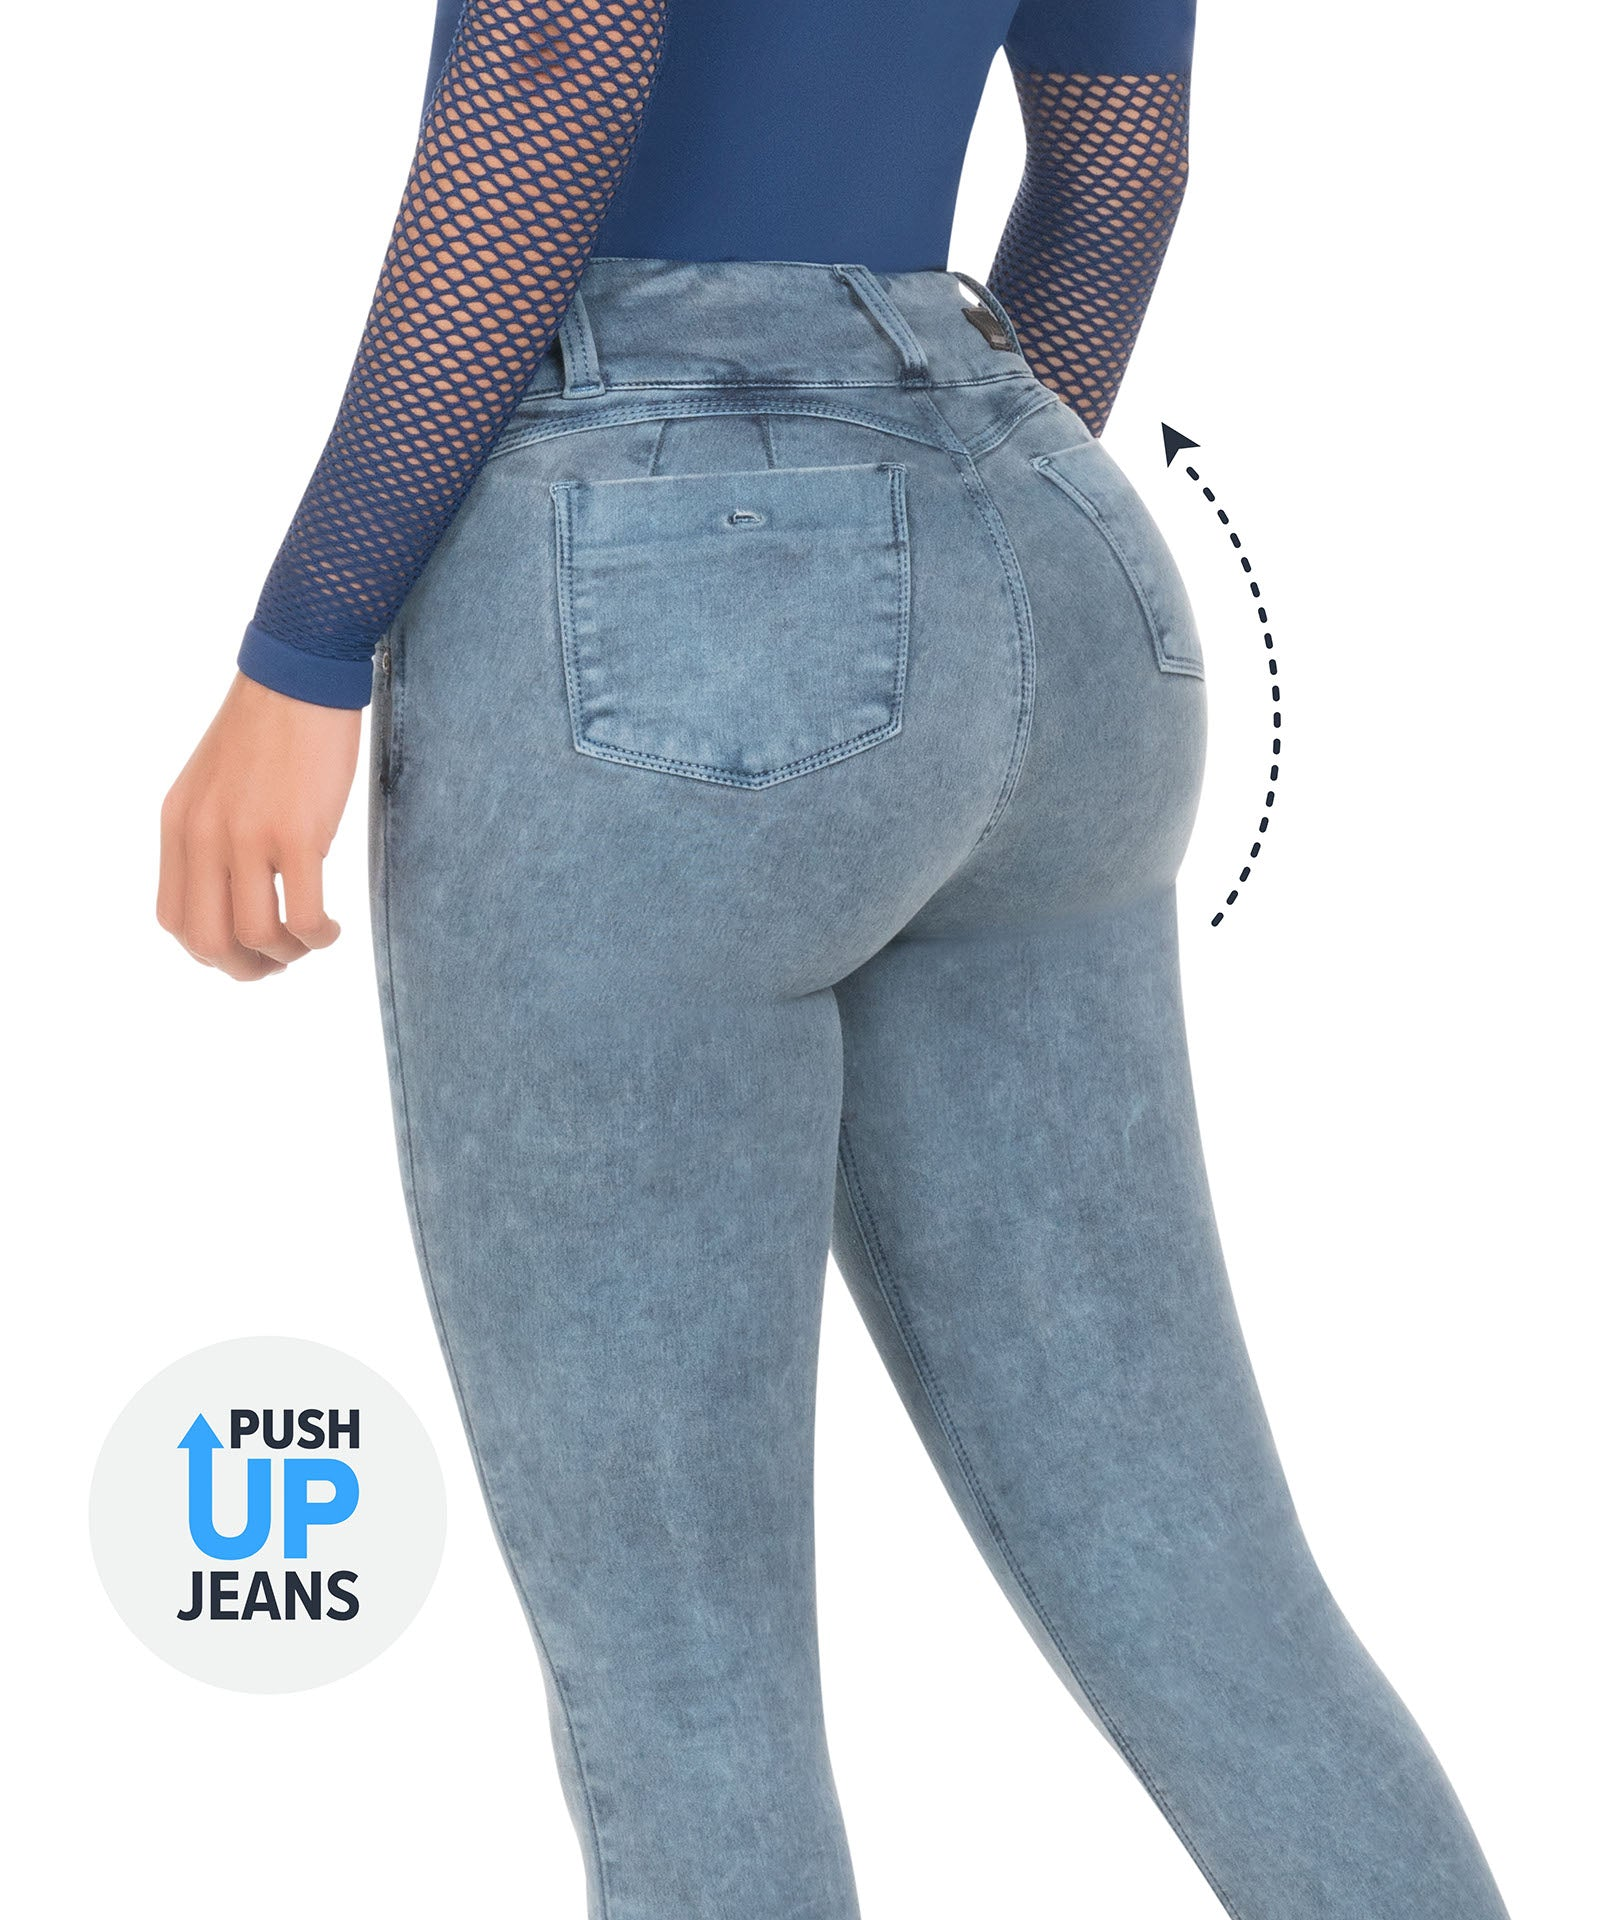 2028 - Push Up Jean by CYSM